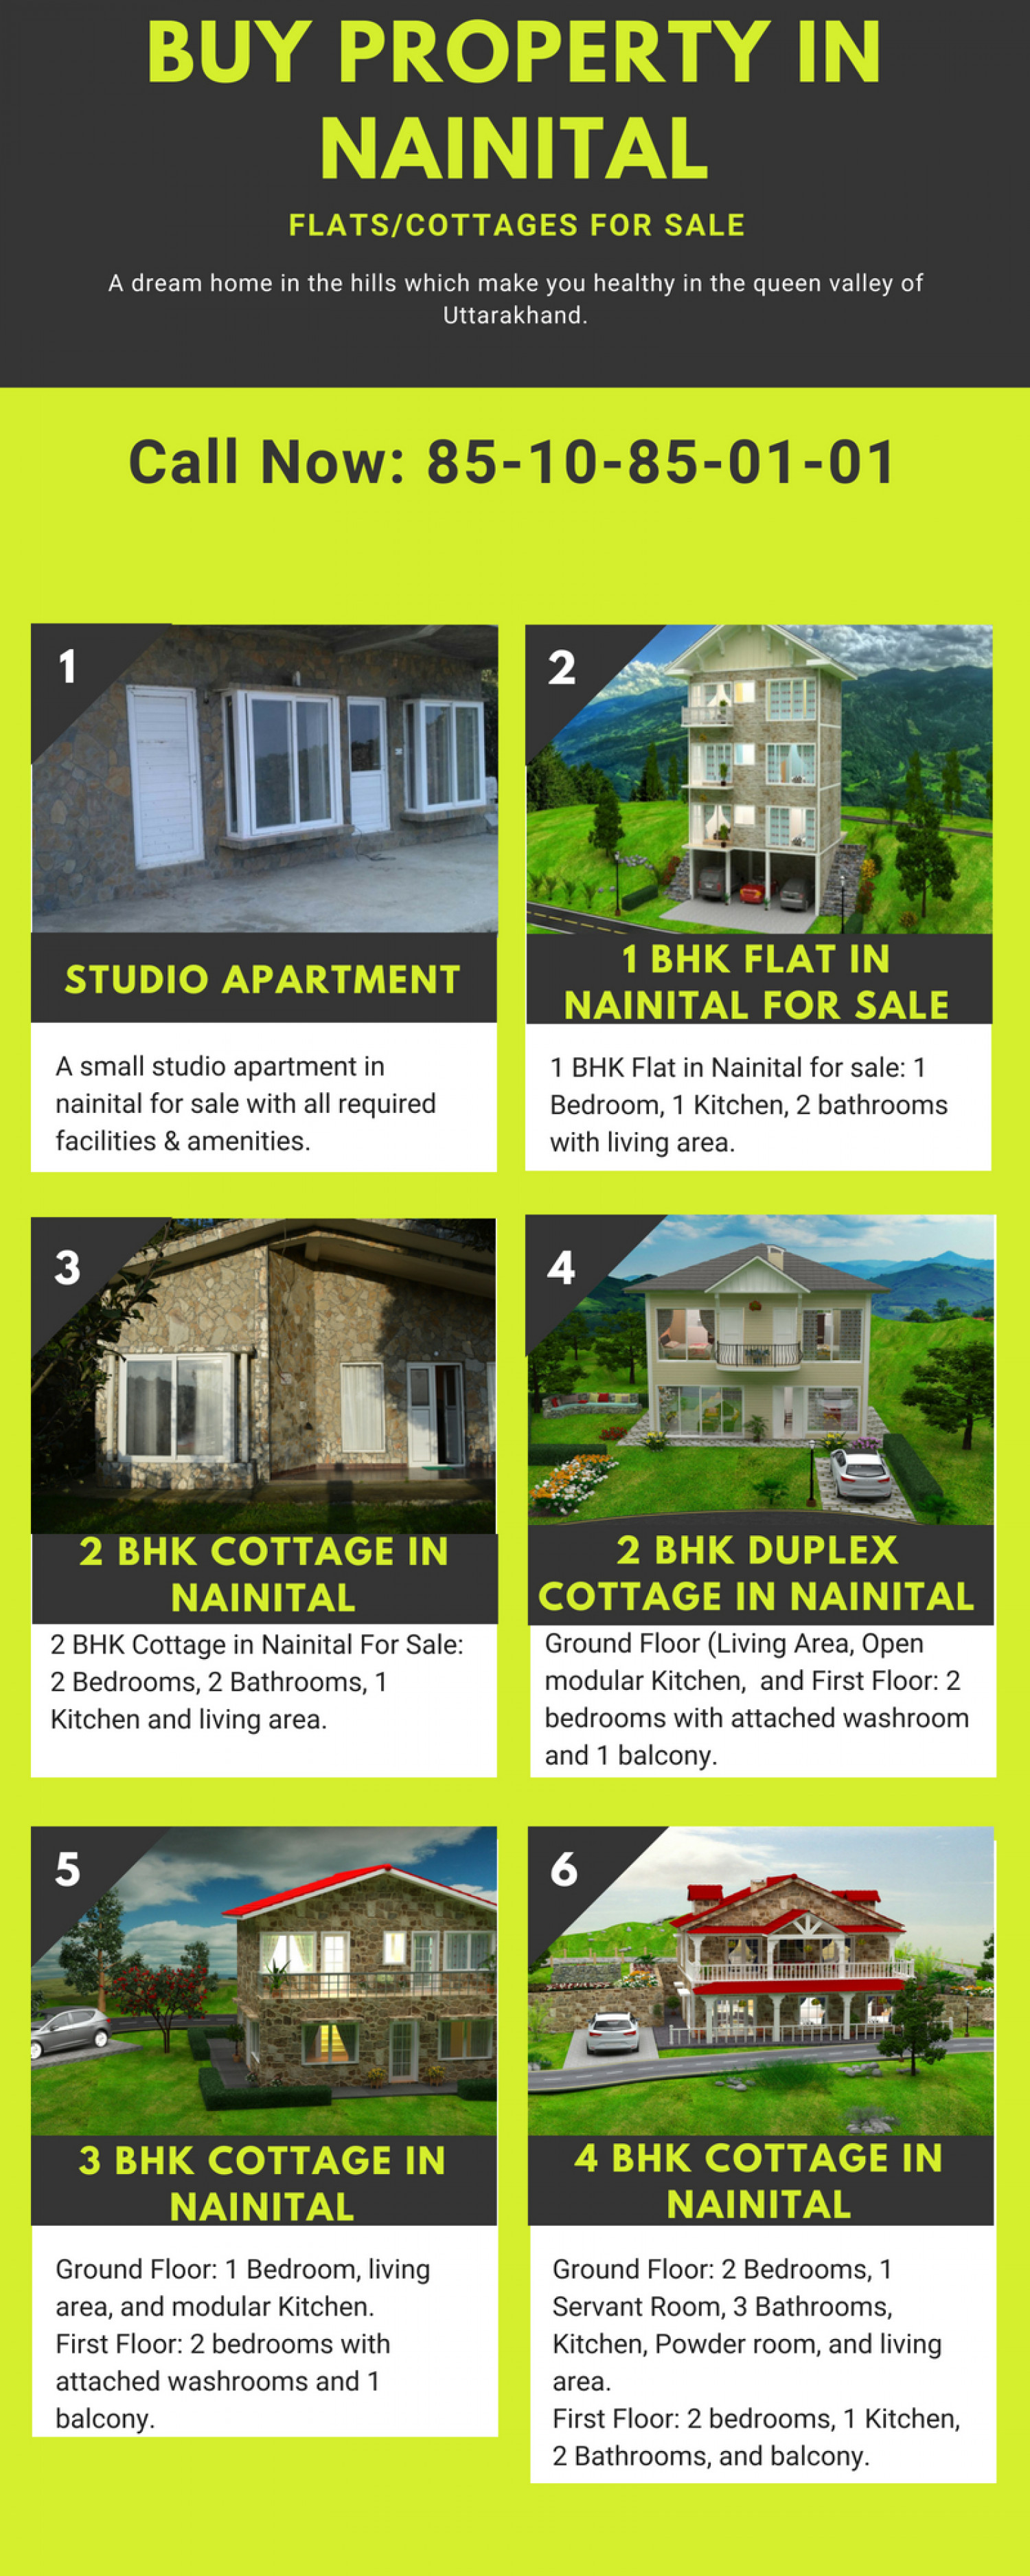 Buy Property in Nainital Infographic